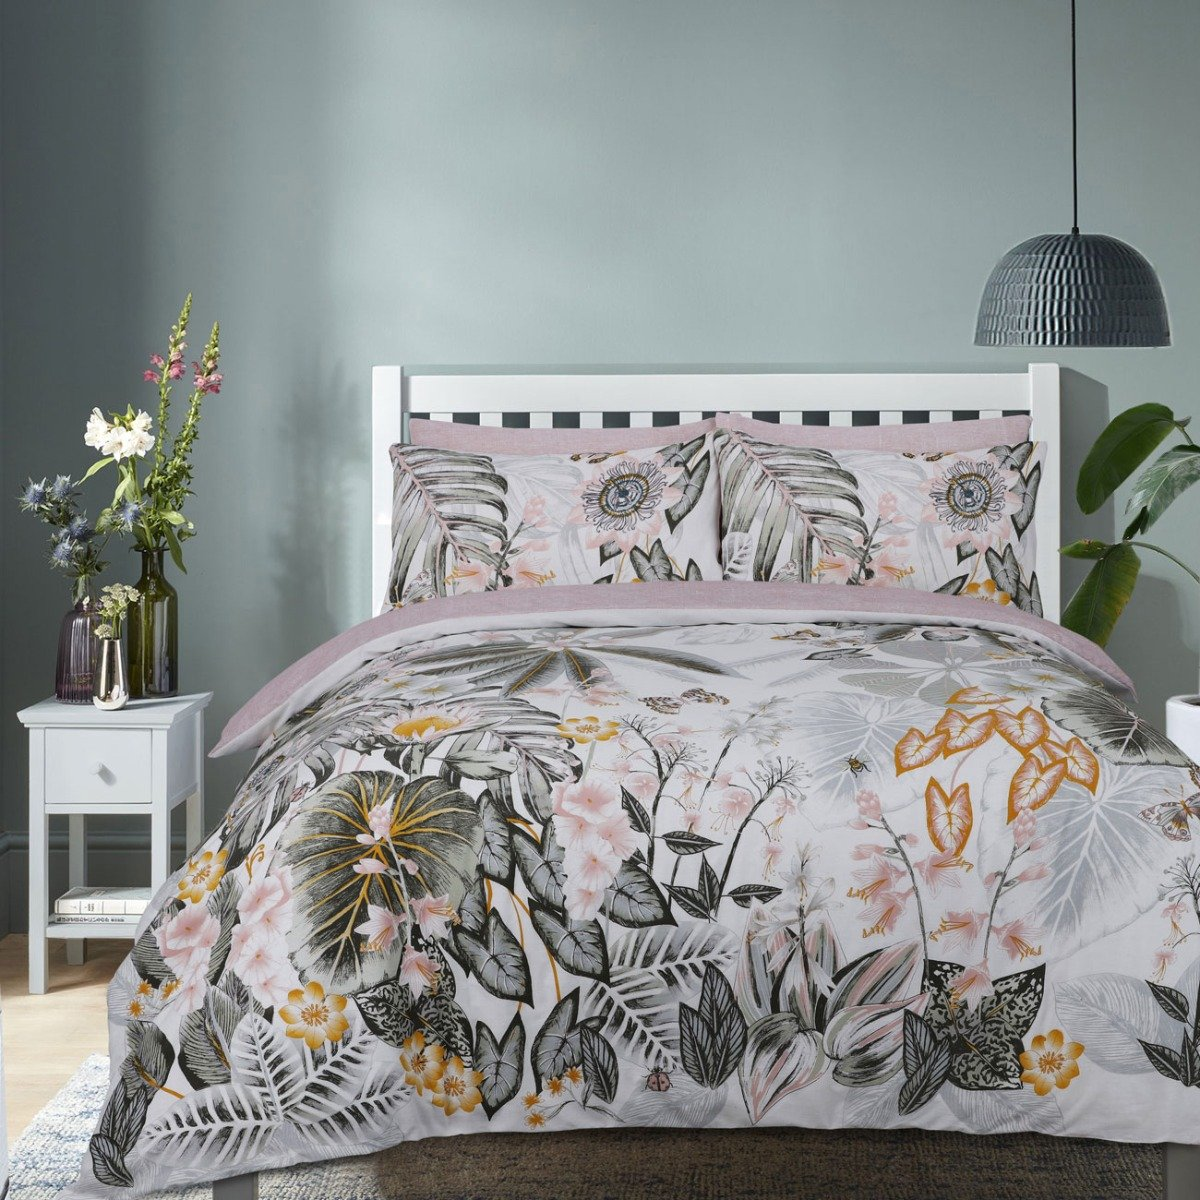 Botanical Tropics Green Bedding - Reversible Duvet Cover and Pillowcase Set